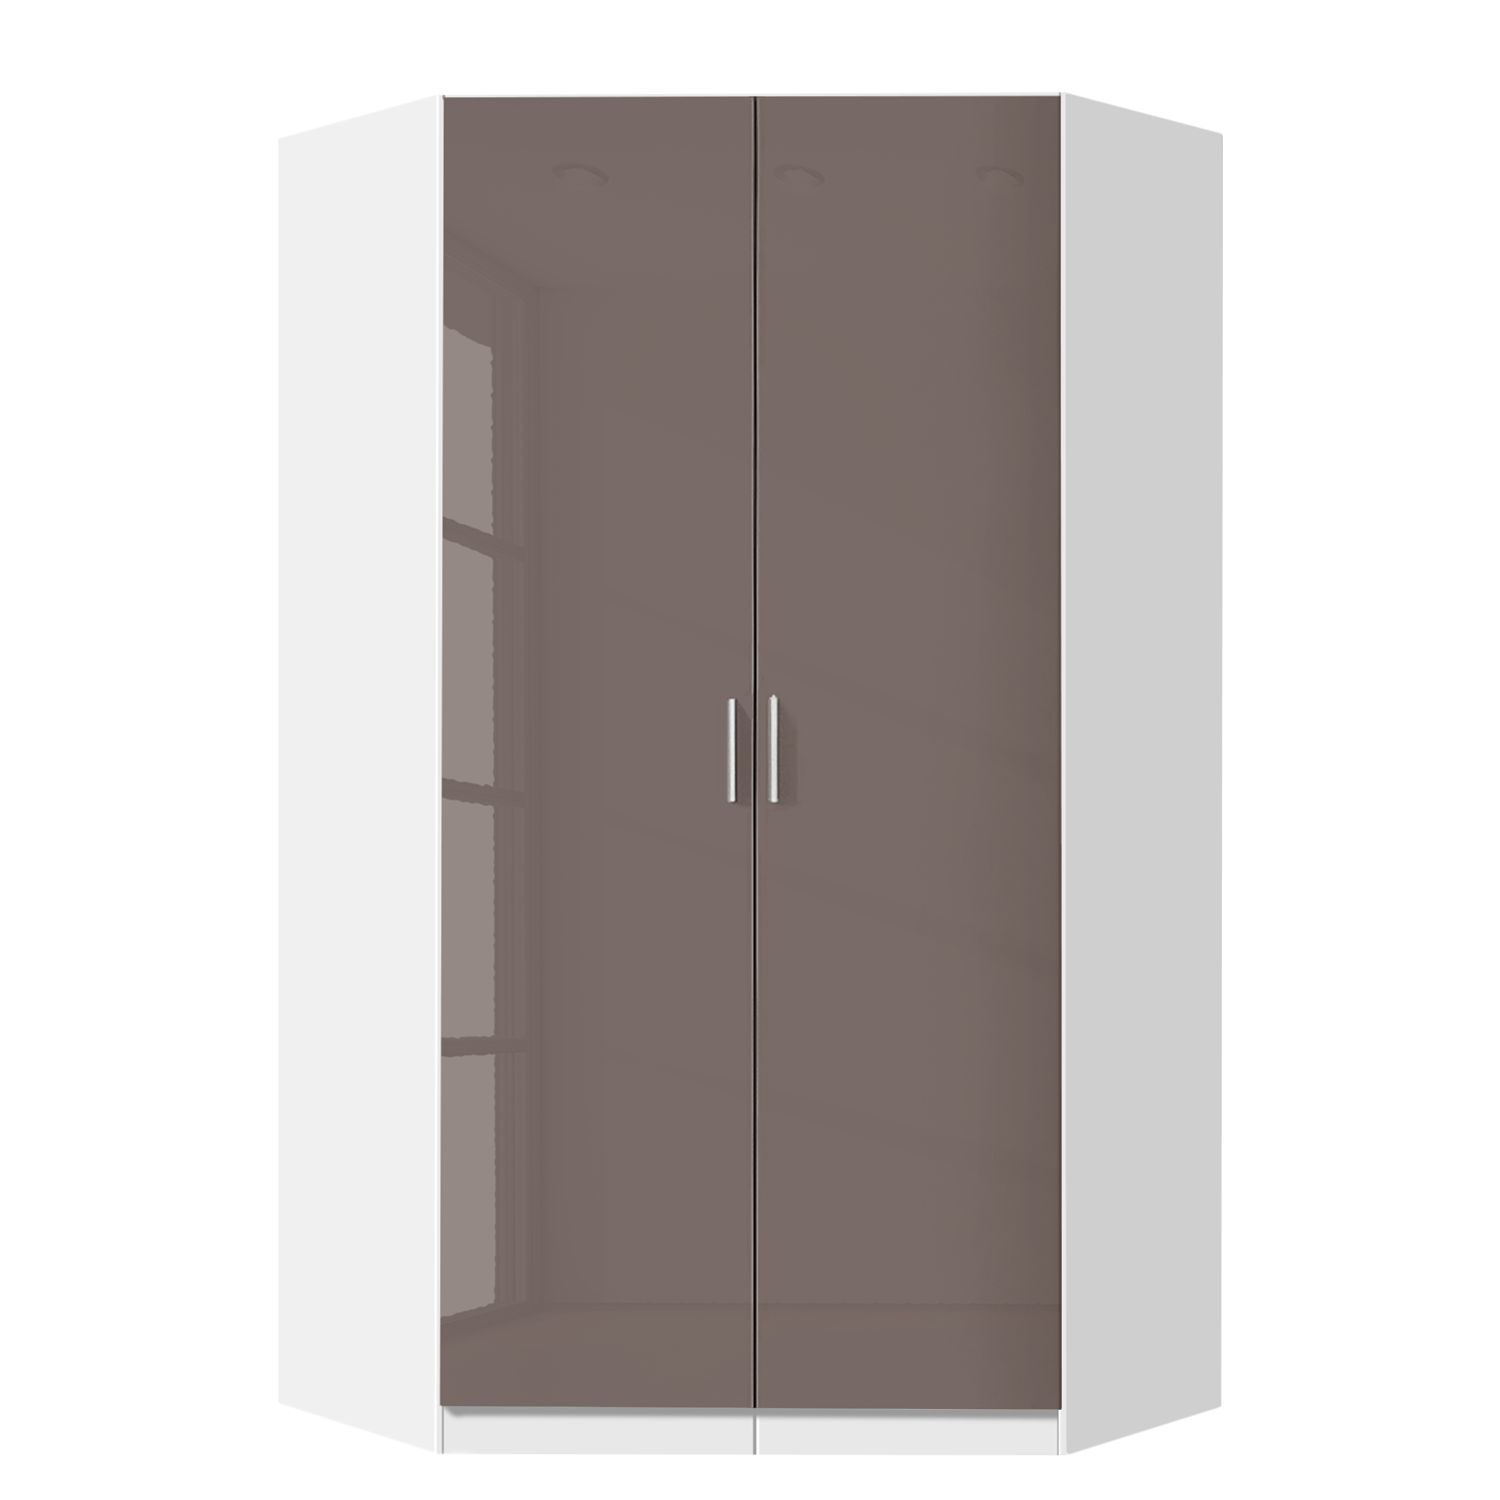 Armoire d'angle Celle - Blanc alpin / Gris lava brillant, Rauch Packs